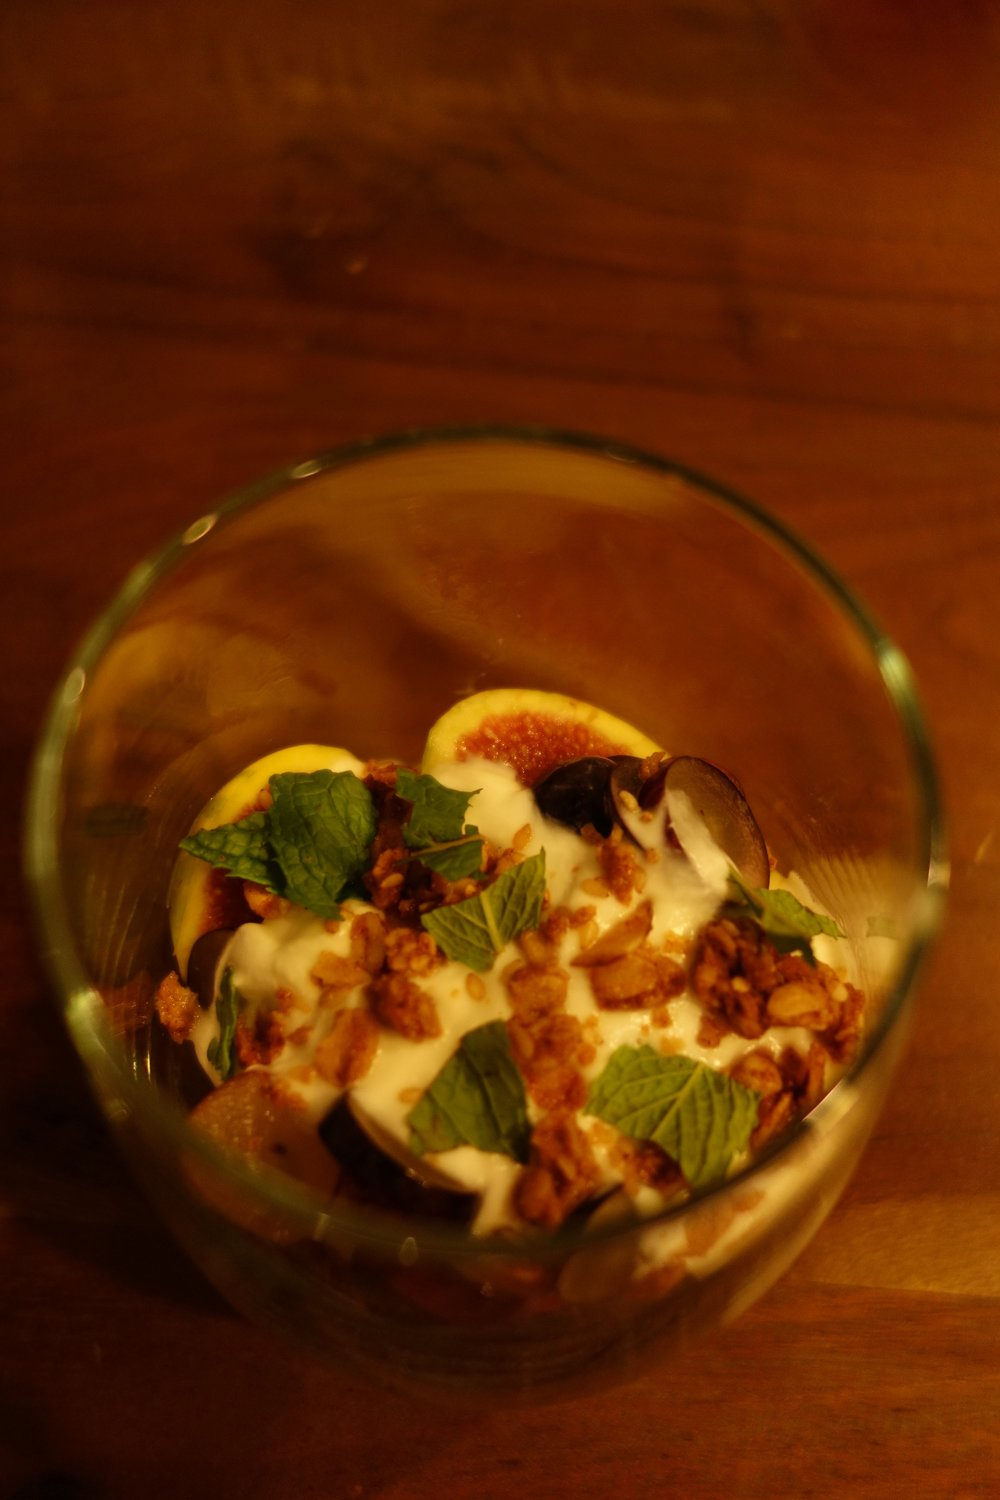 Honey Buffalo Yogurt Parfait, granola, grapes, figs, raspberries, mint